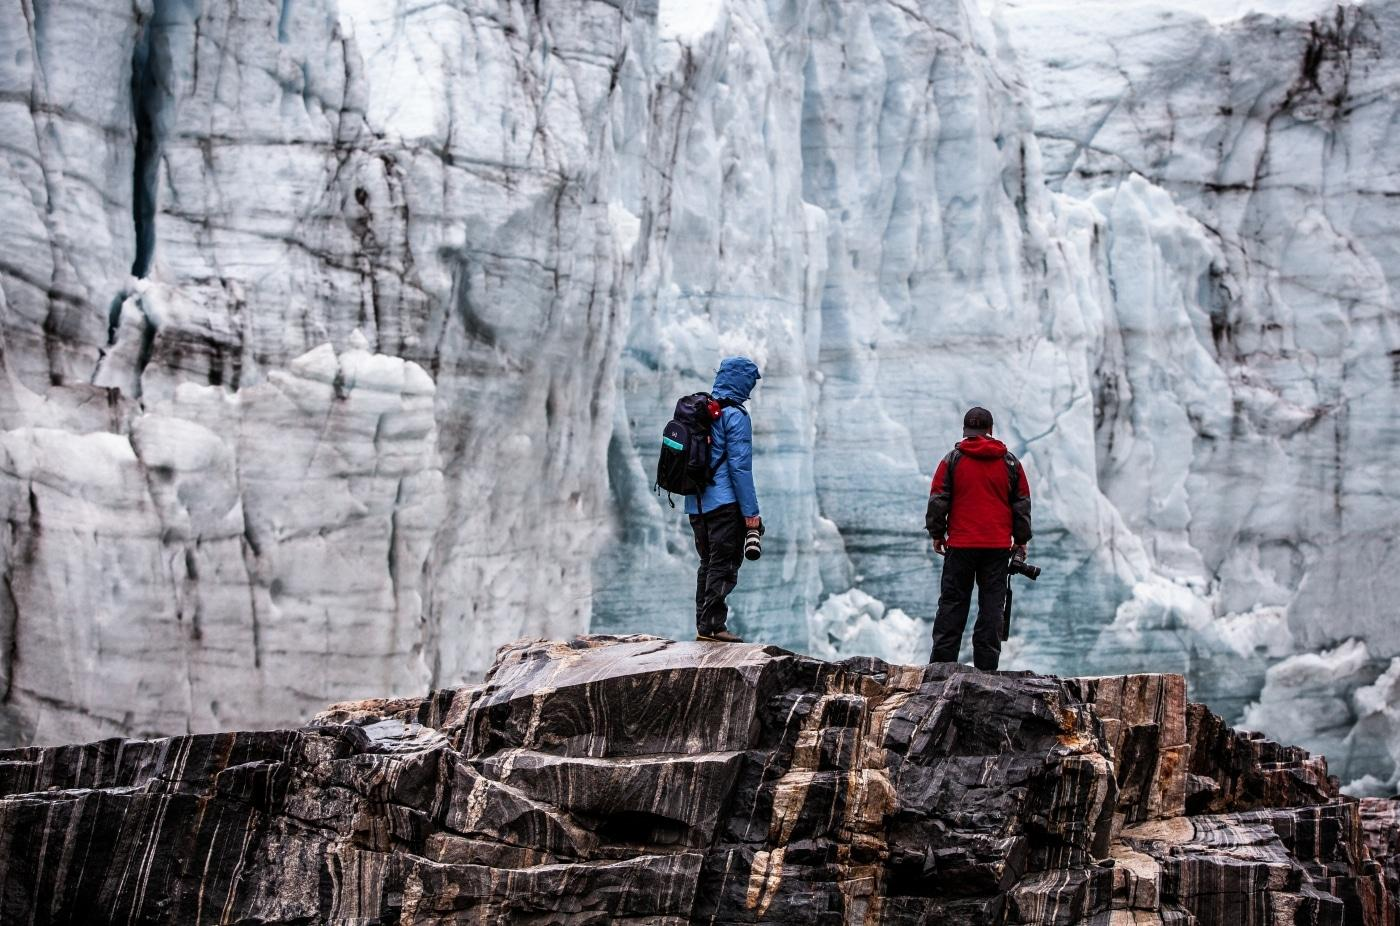 Two photographers on a photo tour by the Russell Glacier in Greenland. Photo by Mads Pihl, Visit Greenland